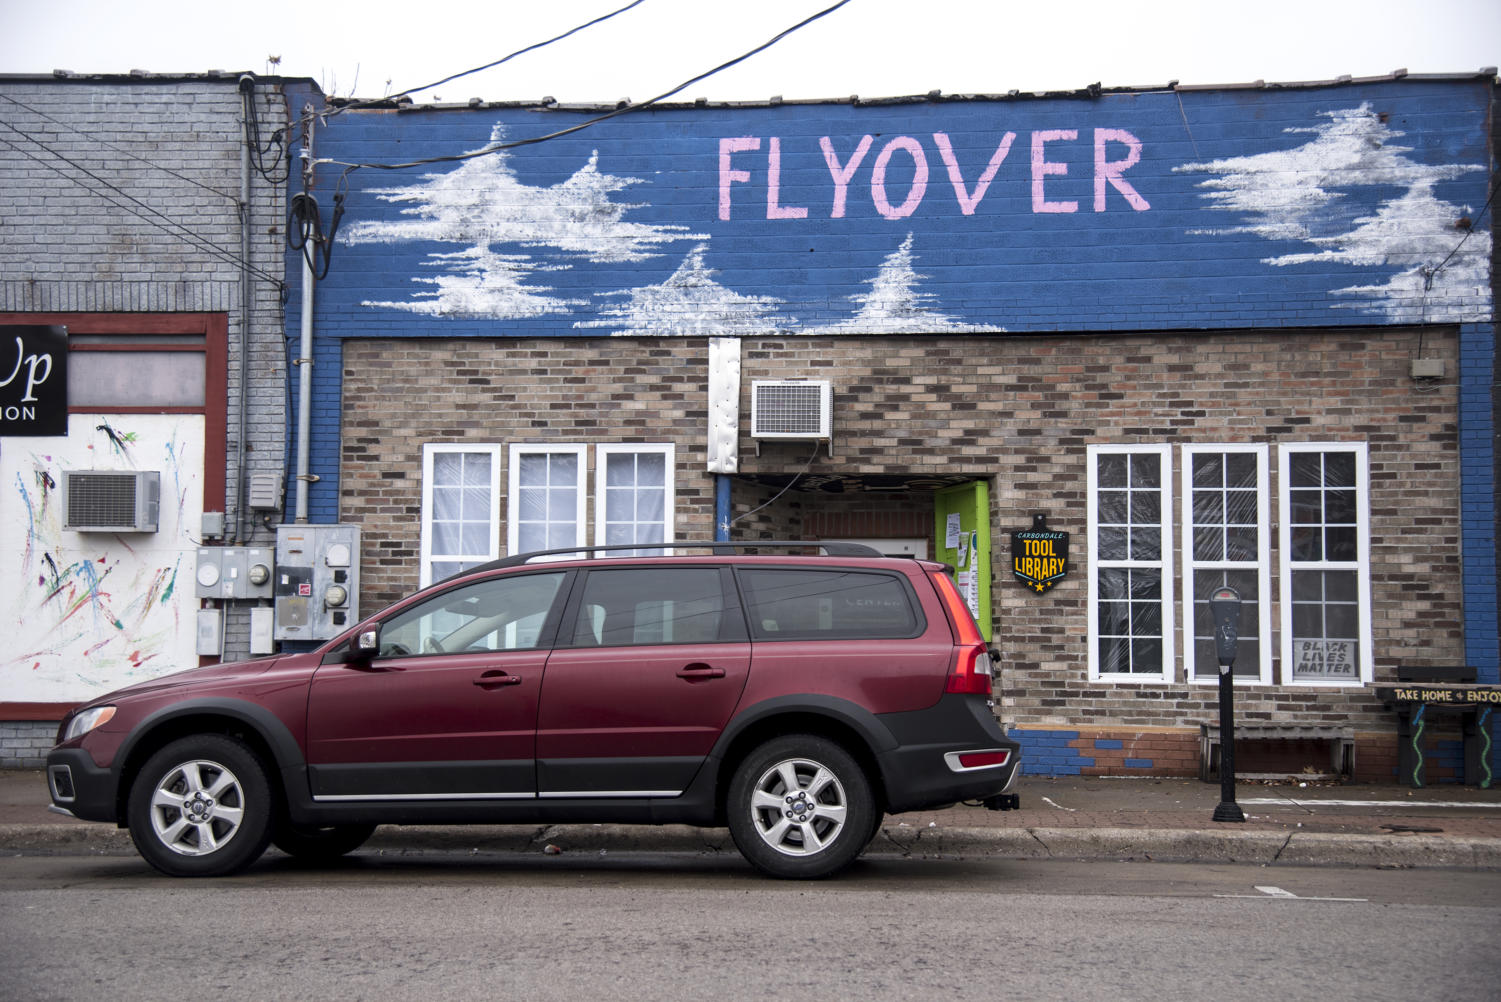 Flyover Social Center, Sunday, Jan. 21, 2018, in Carbondale, the center is a creative space for the community. (Mary Newman   @MaryNewmanDE)